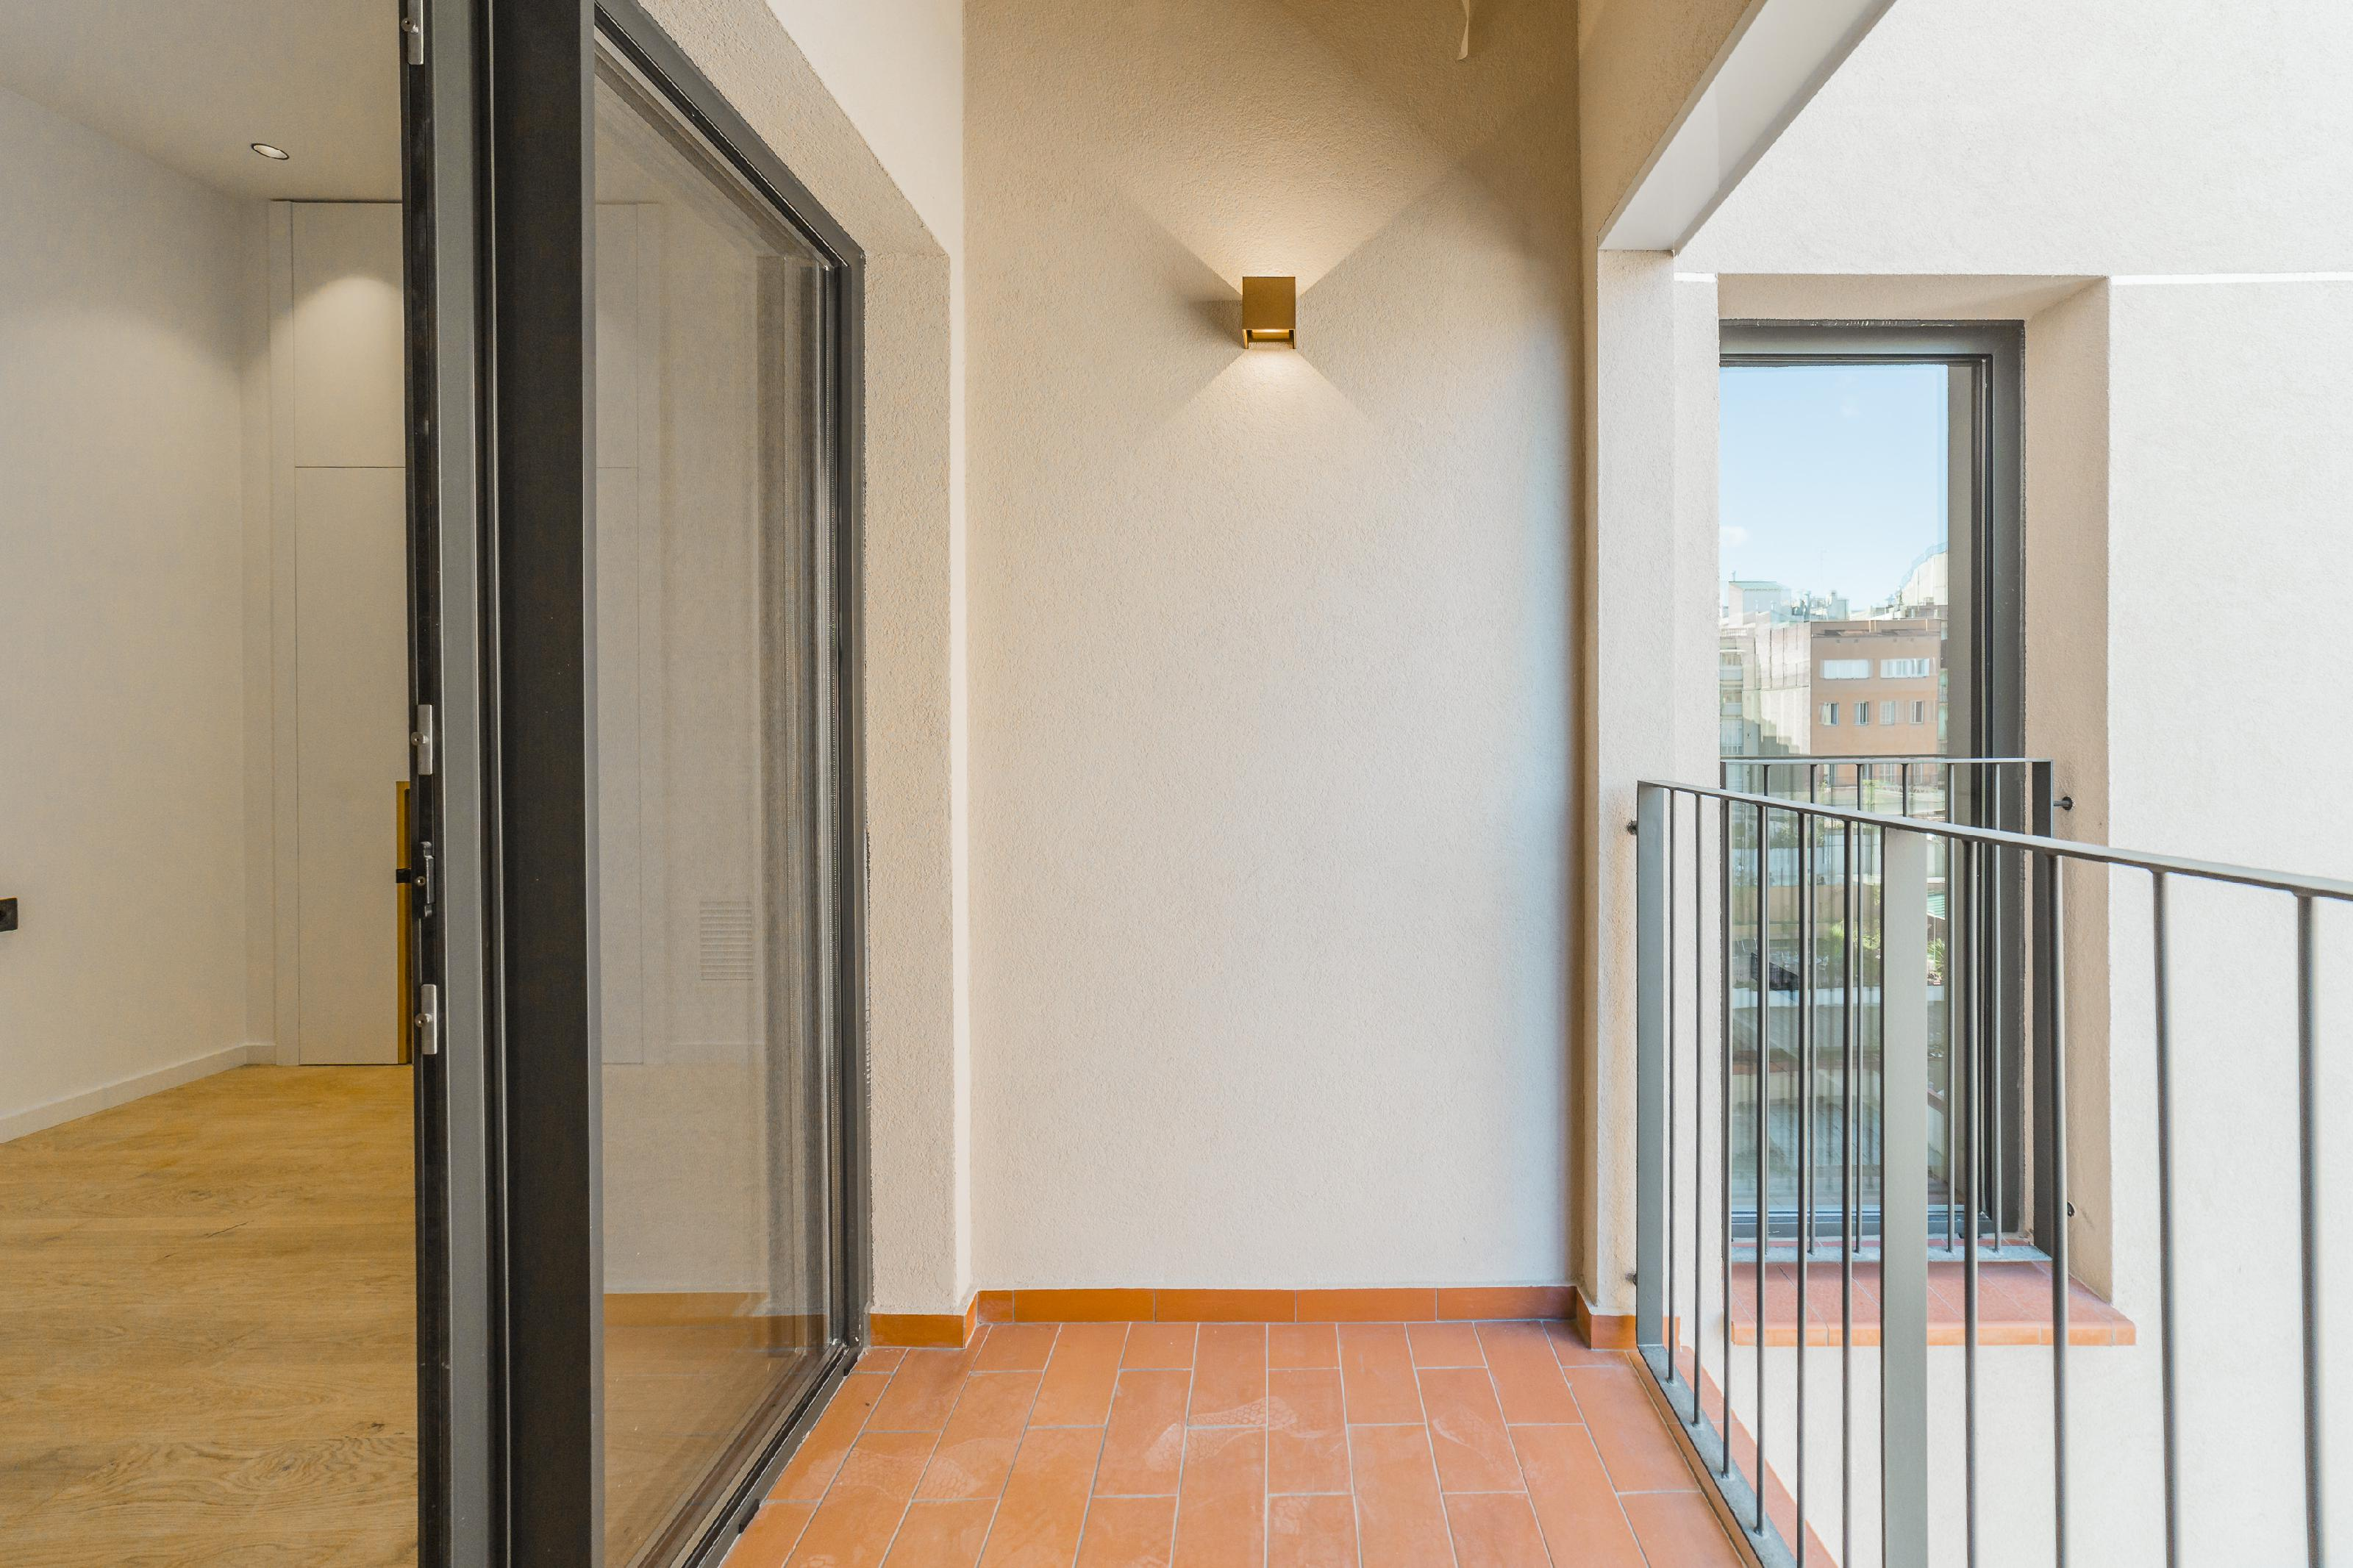 182474 Apartment for sale in Eixample, Old Left Eixample 26